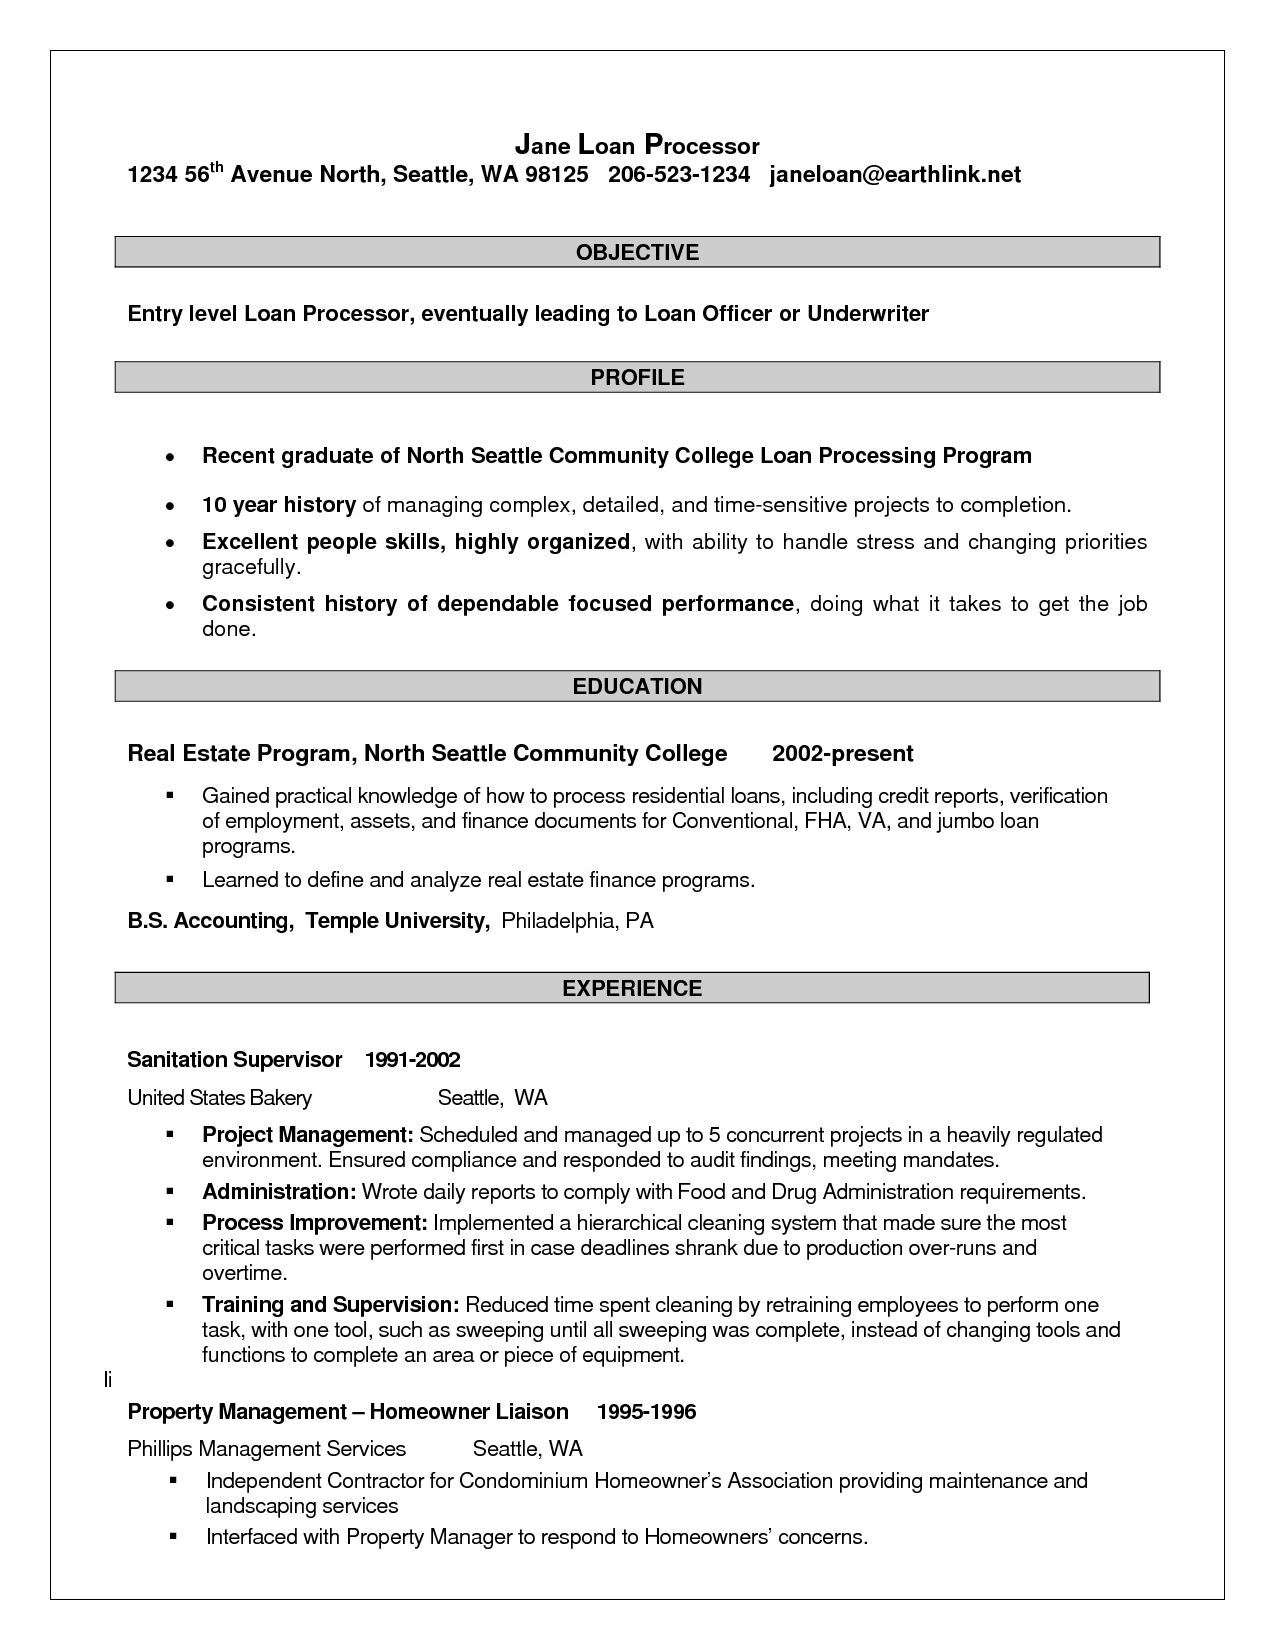 Resume For Loan Processor Career Objectives For Resume Loan Officer Sample Resume